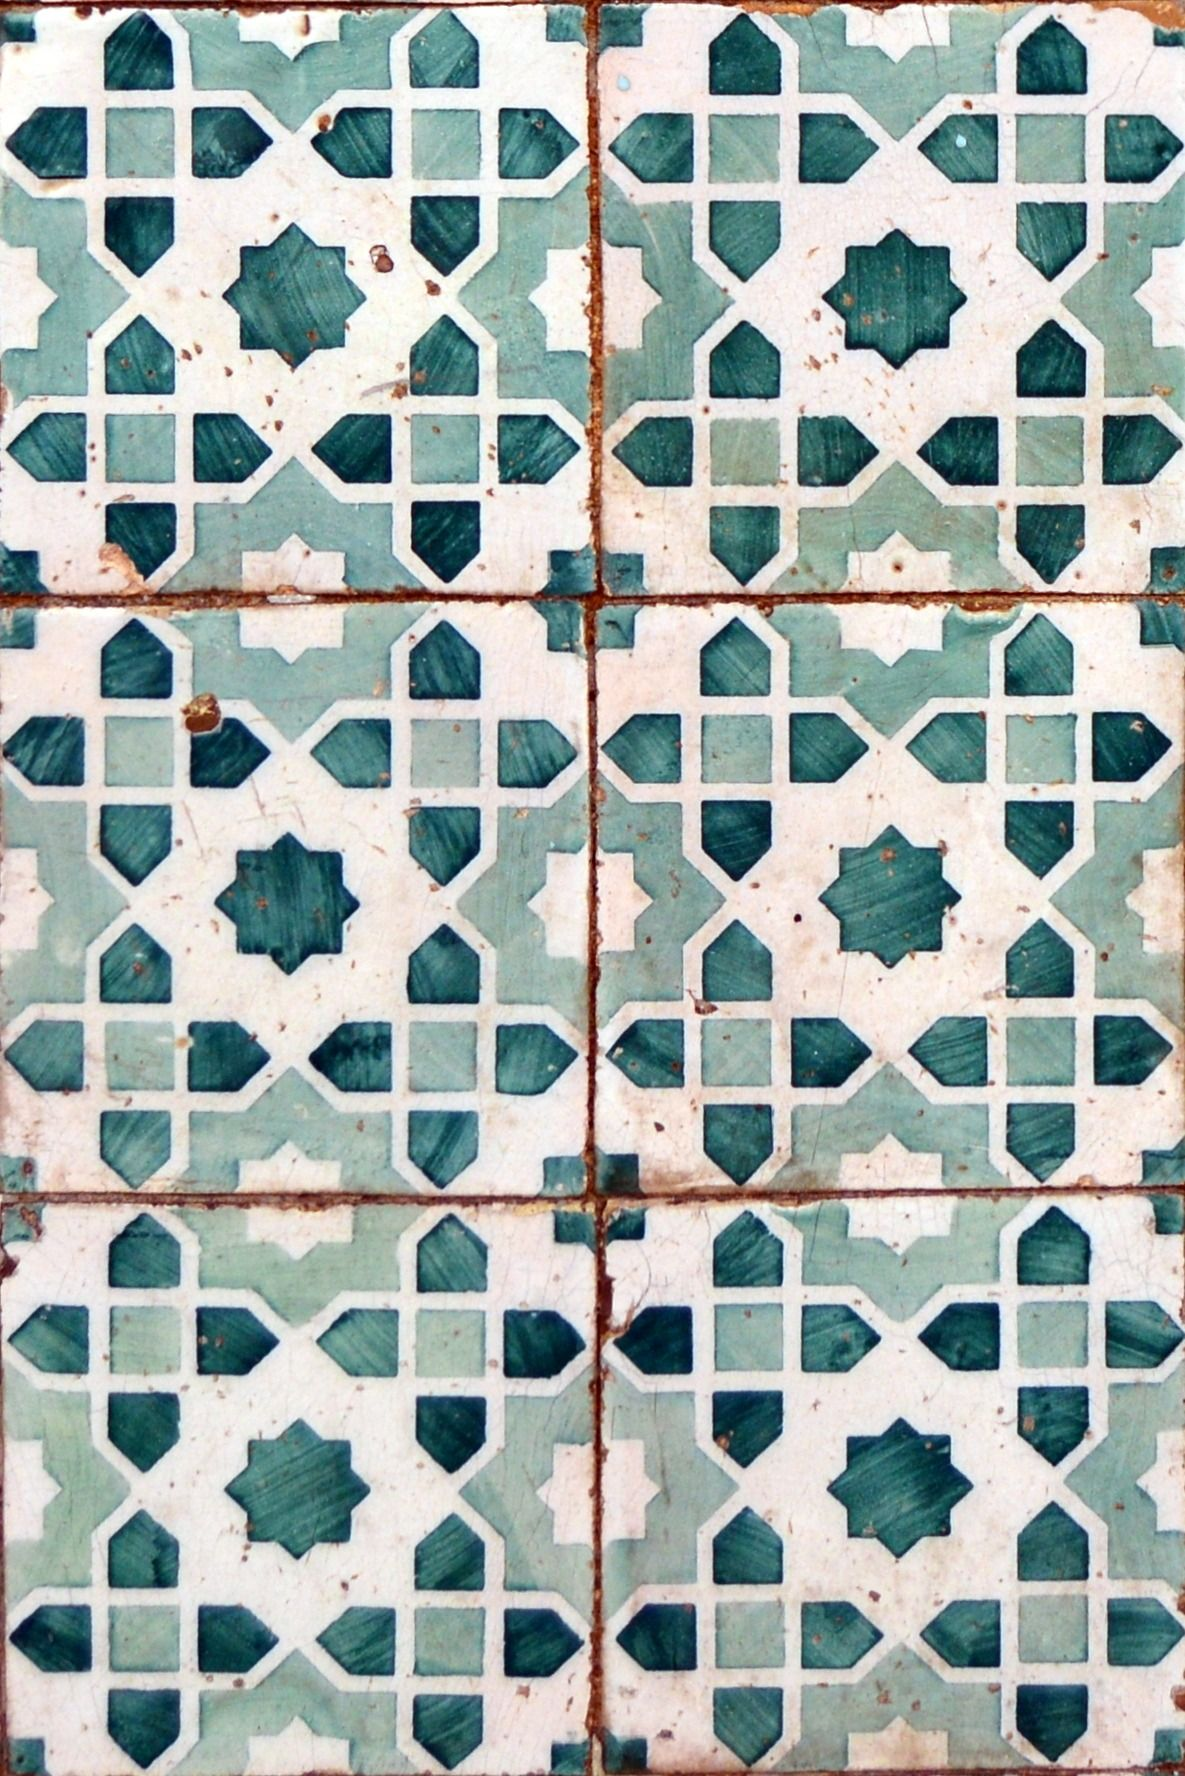 Pin by • Priscilla • on Tile Designs | Pinterest | Patterns ...